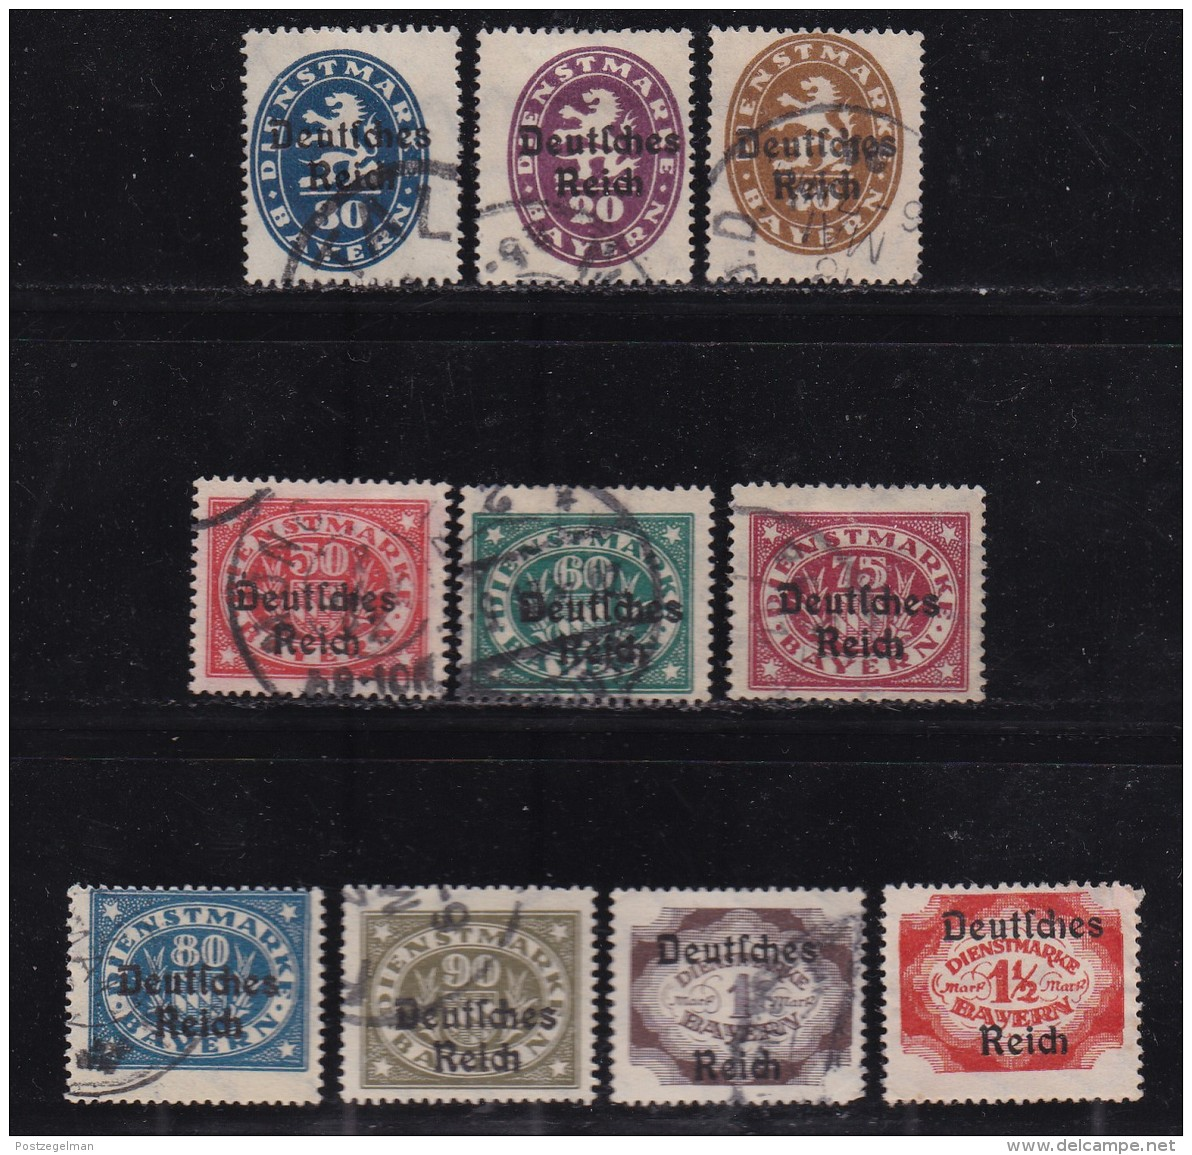 DEUTSCHES REICH, 1920, Cancelled Stamp(s), Overprints On Bayern, MI D34=D51, #16216,  10 Values Only - Germany